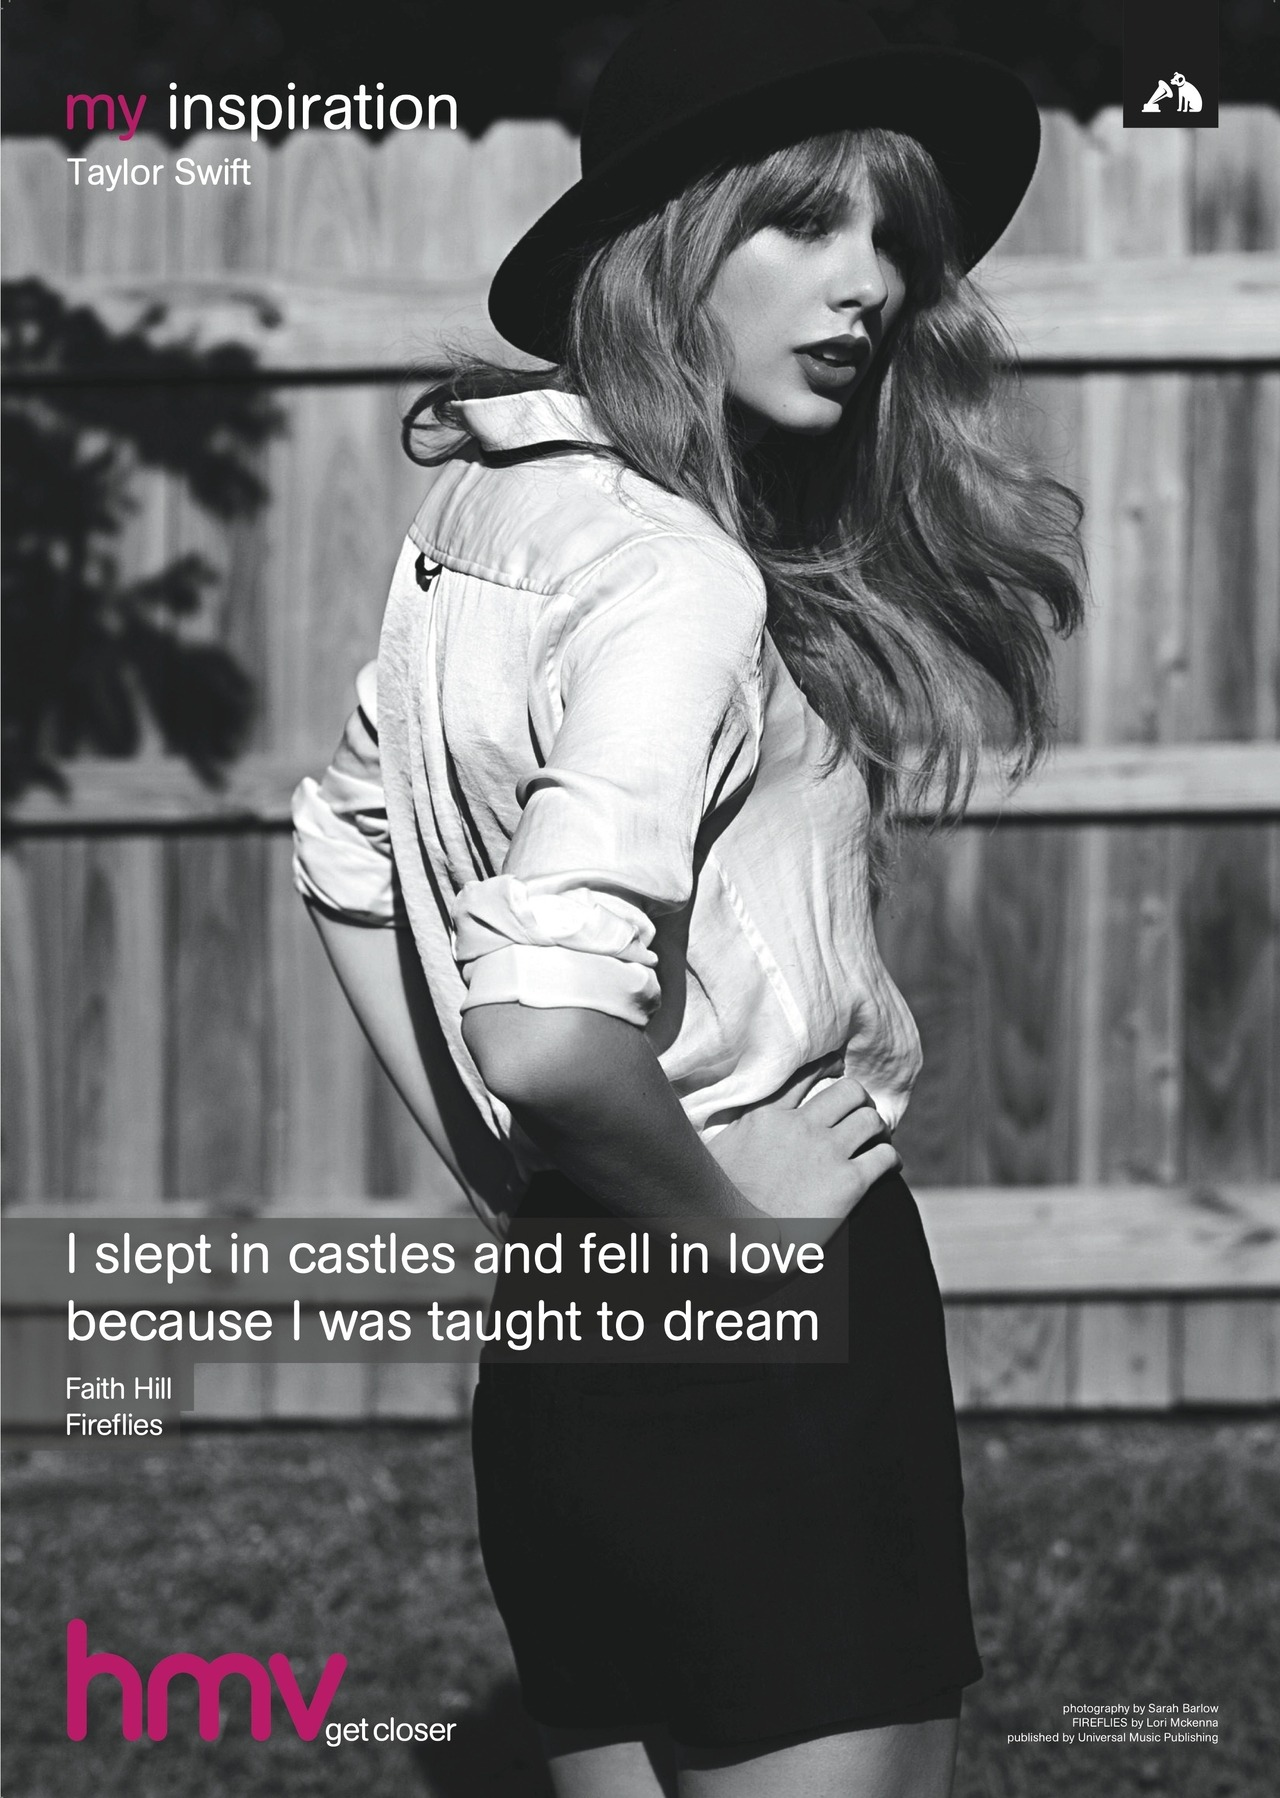 Taylor Swift - hmv my inspiration poster Taylor Swift chose a lyric from the track Fireflies by Faith Hill as her inspiration. Her new album RED was released today, and for one day only you can pick it up for just £8 in-store and online at hmv.com Over on twitter, we're giving away copies of her my inspiration poster - SIGNED by Taylor herself! Don't miss out! What's your favourite track from Taylor's new album?